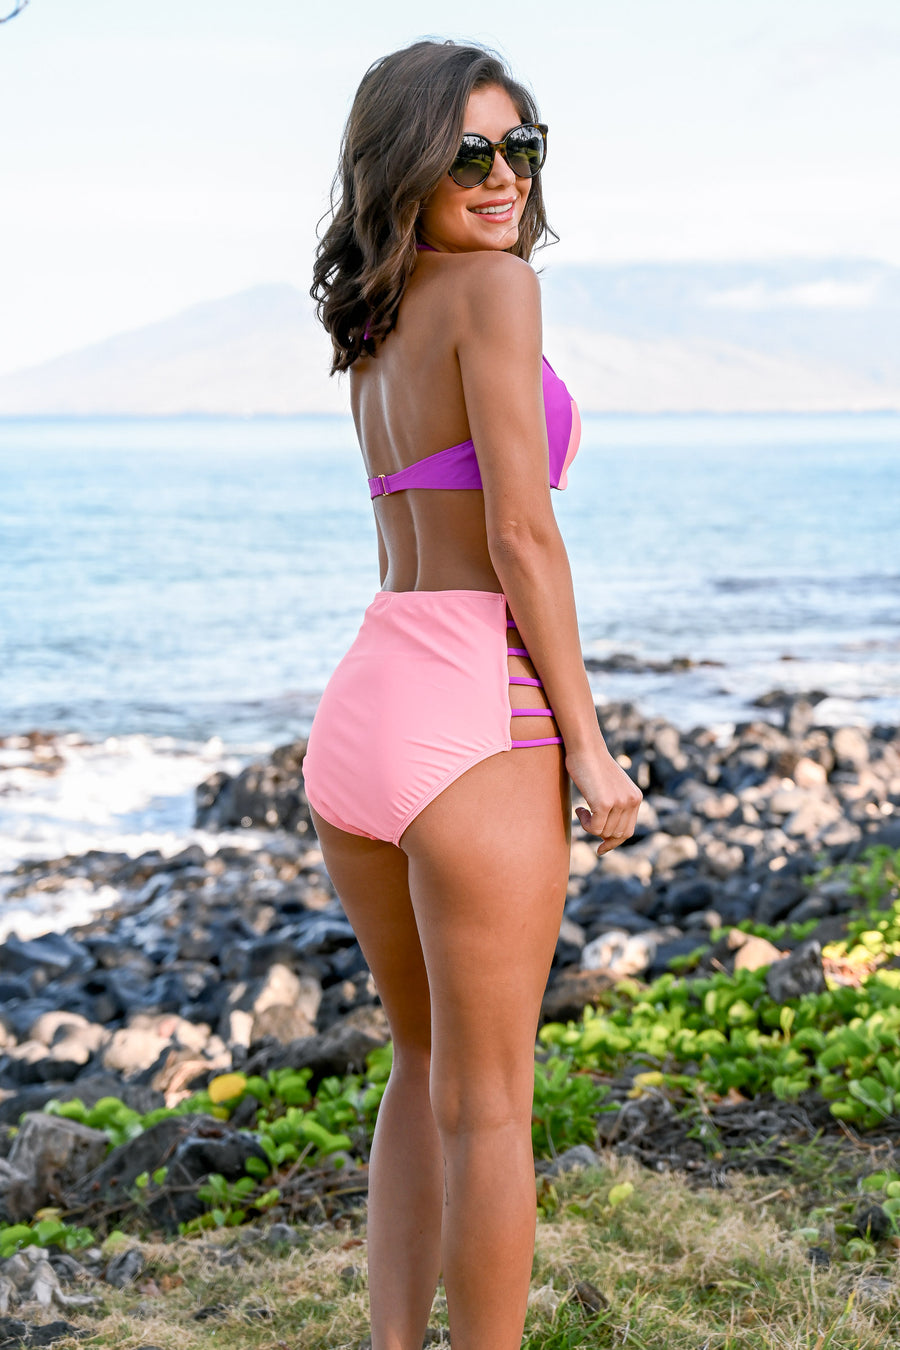 Off The Coast Bikini - Coral & purple vibrant high-waisted push-up bikini, Closet Candy Boutique 1